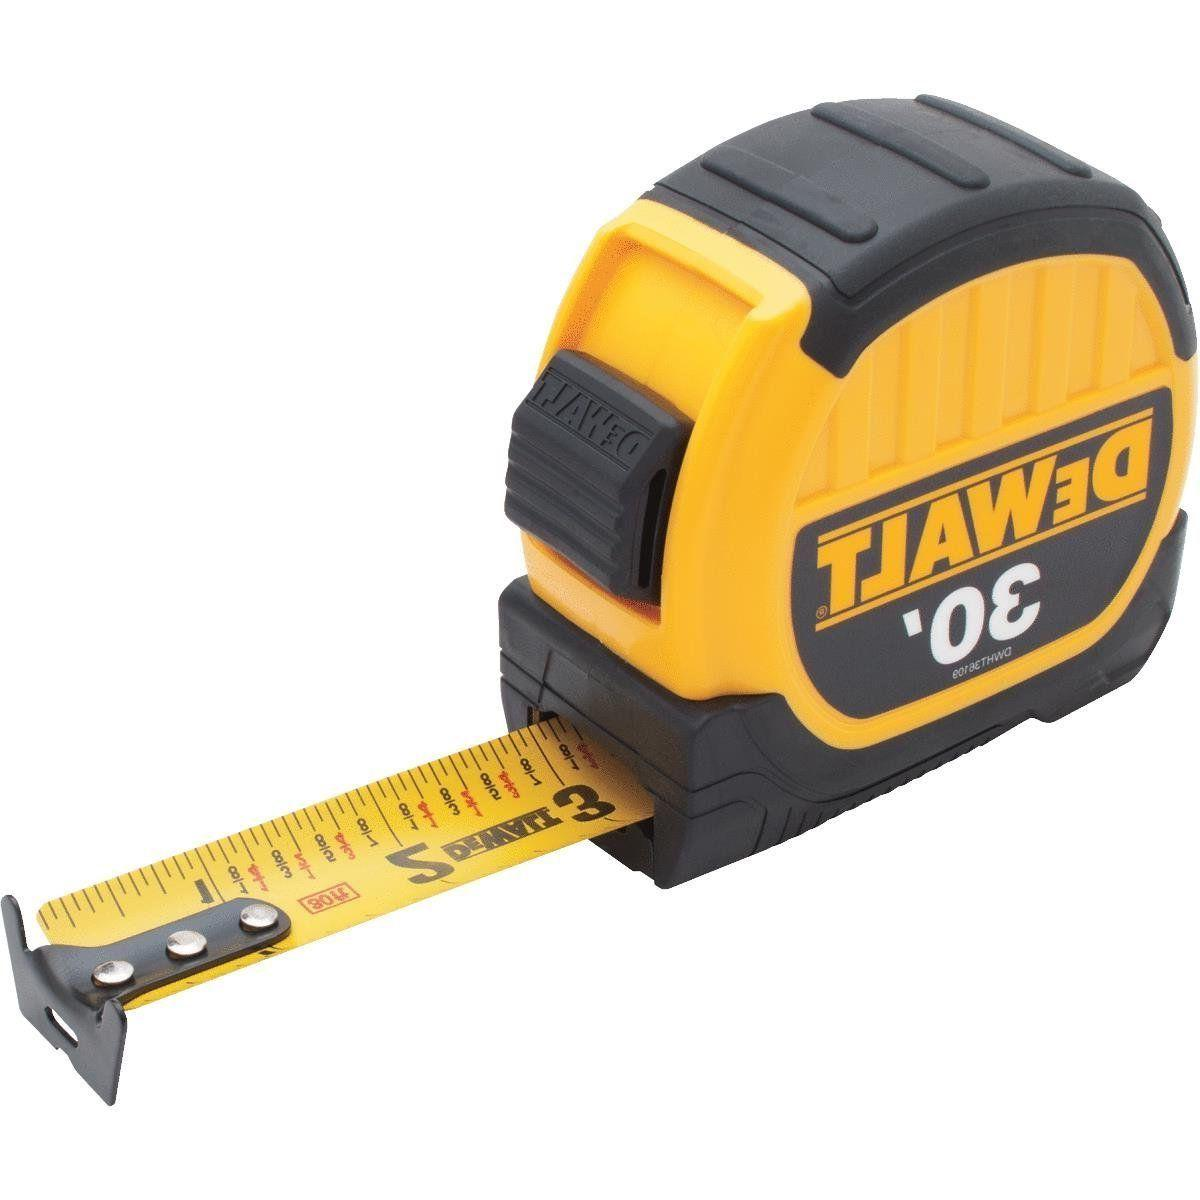 DEWALT 30' Measure 10' Standout HEAVY DUTY TAPE